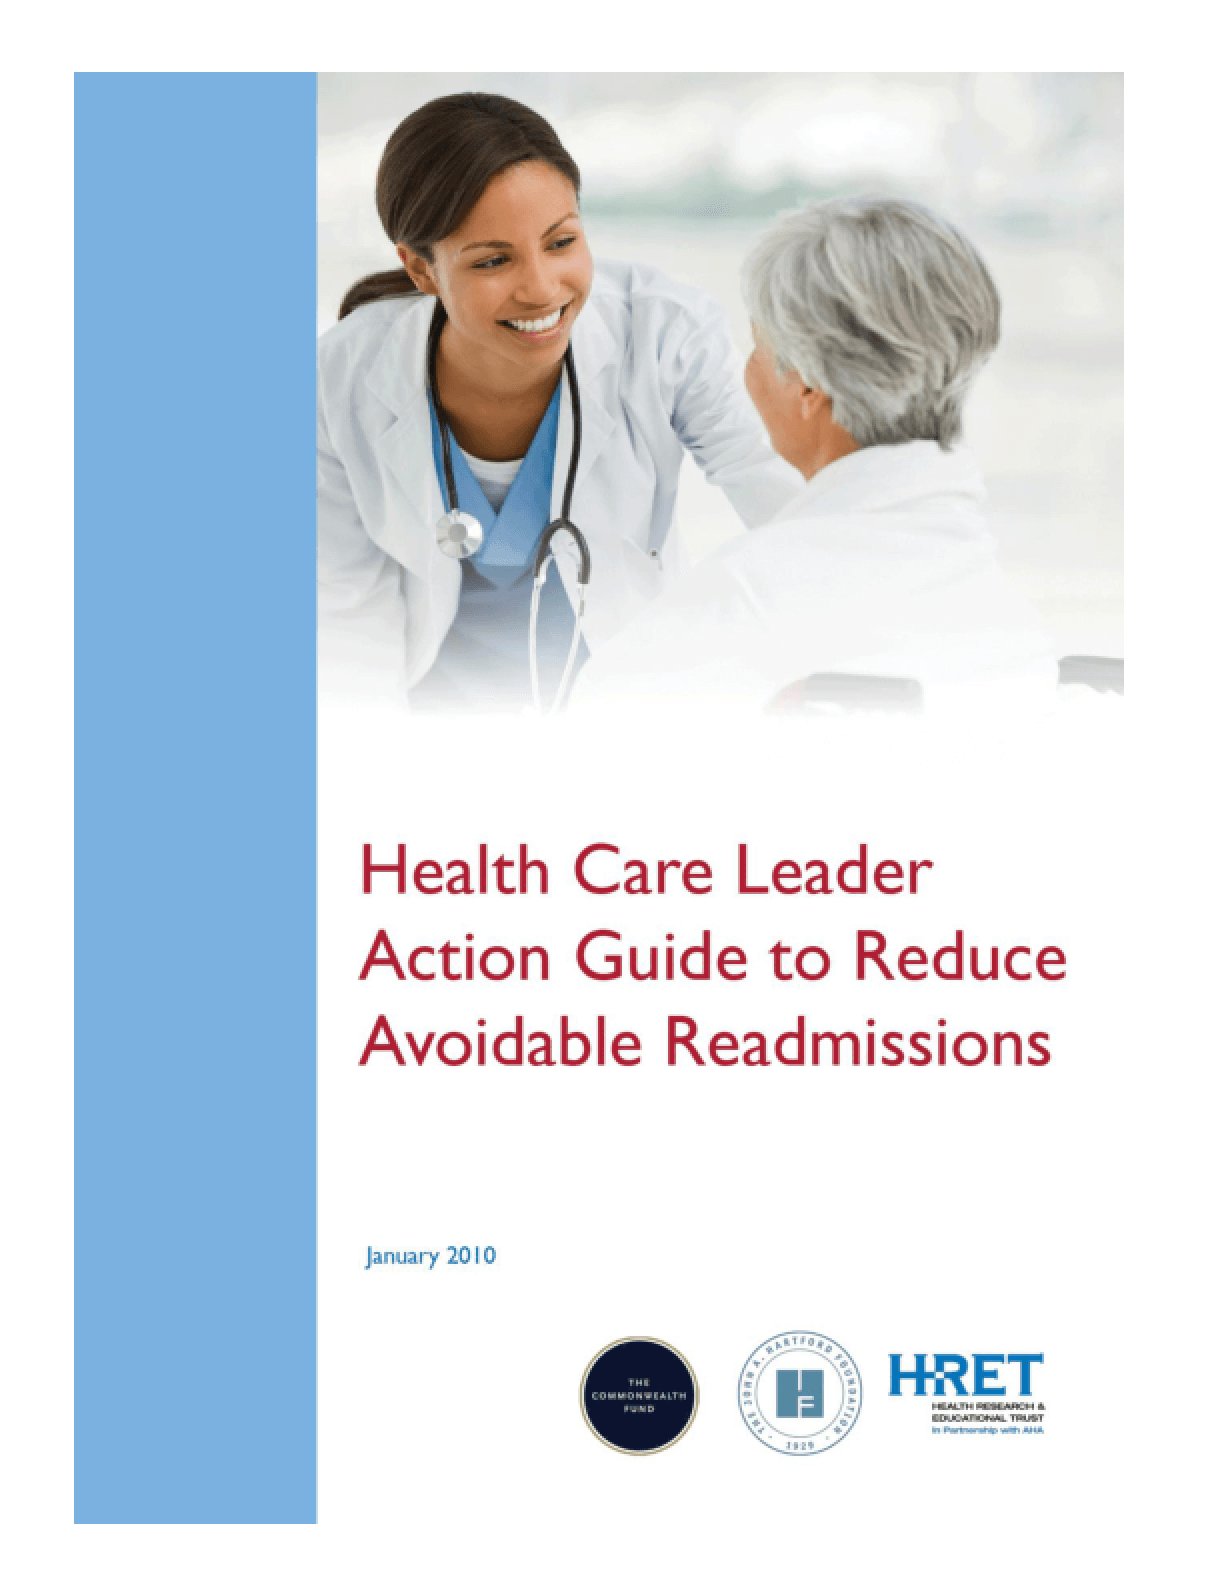 Health Care Leader Action Guide to Reduce Avoidable Readmissions